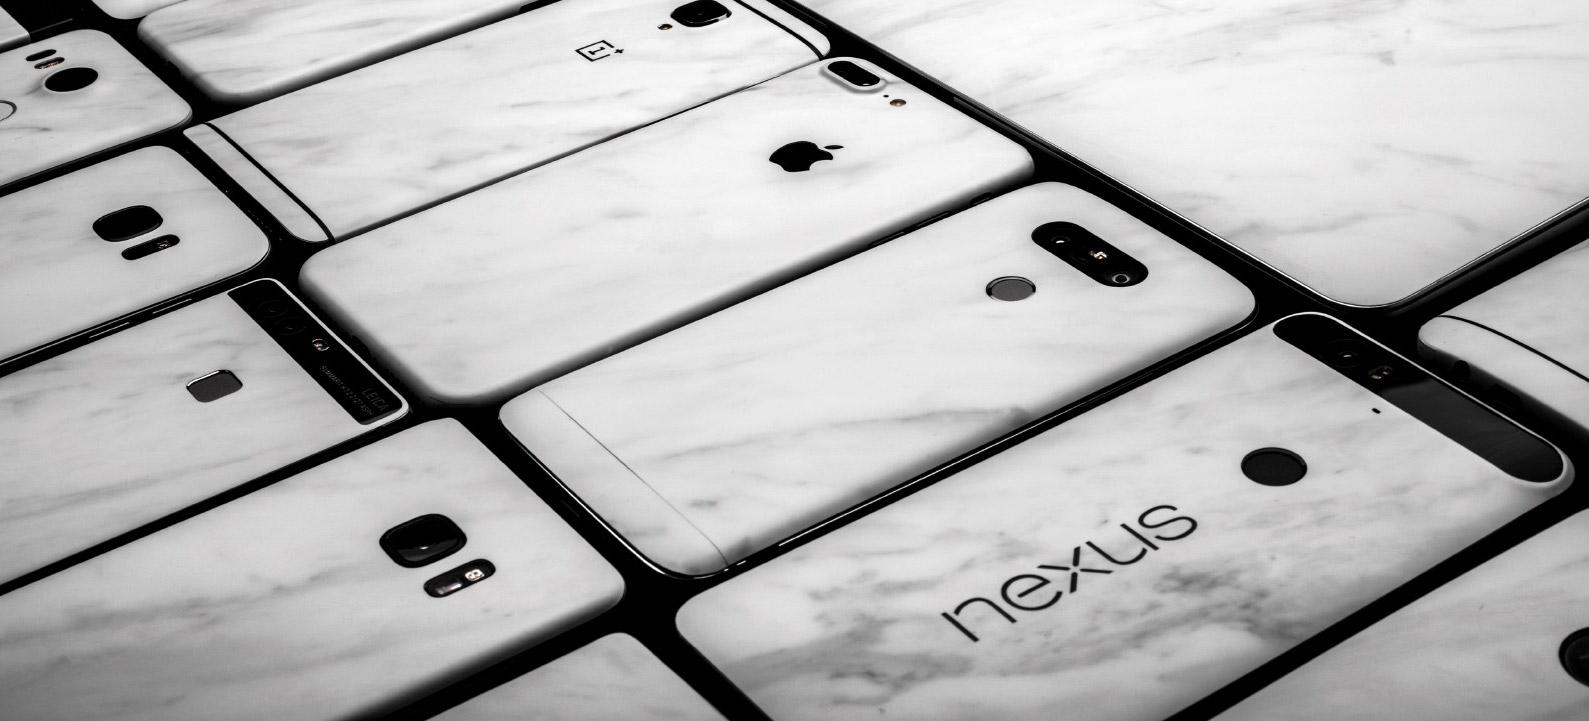 Google themes marble - Do You Want To Keep Your Galaxy S7 Edge S Glass Back Free Of Cracks Want To Cover Up Some Blemishes On The Back Of Your Oneplus 3